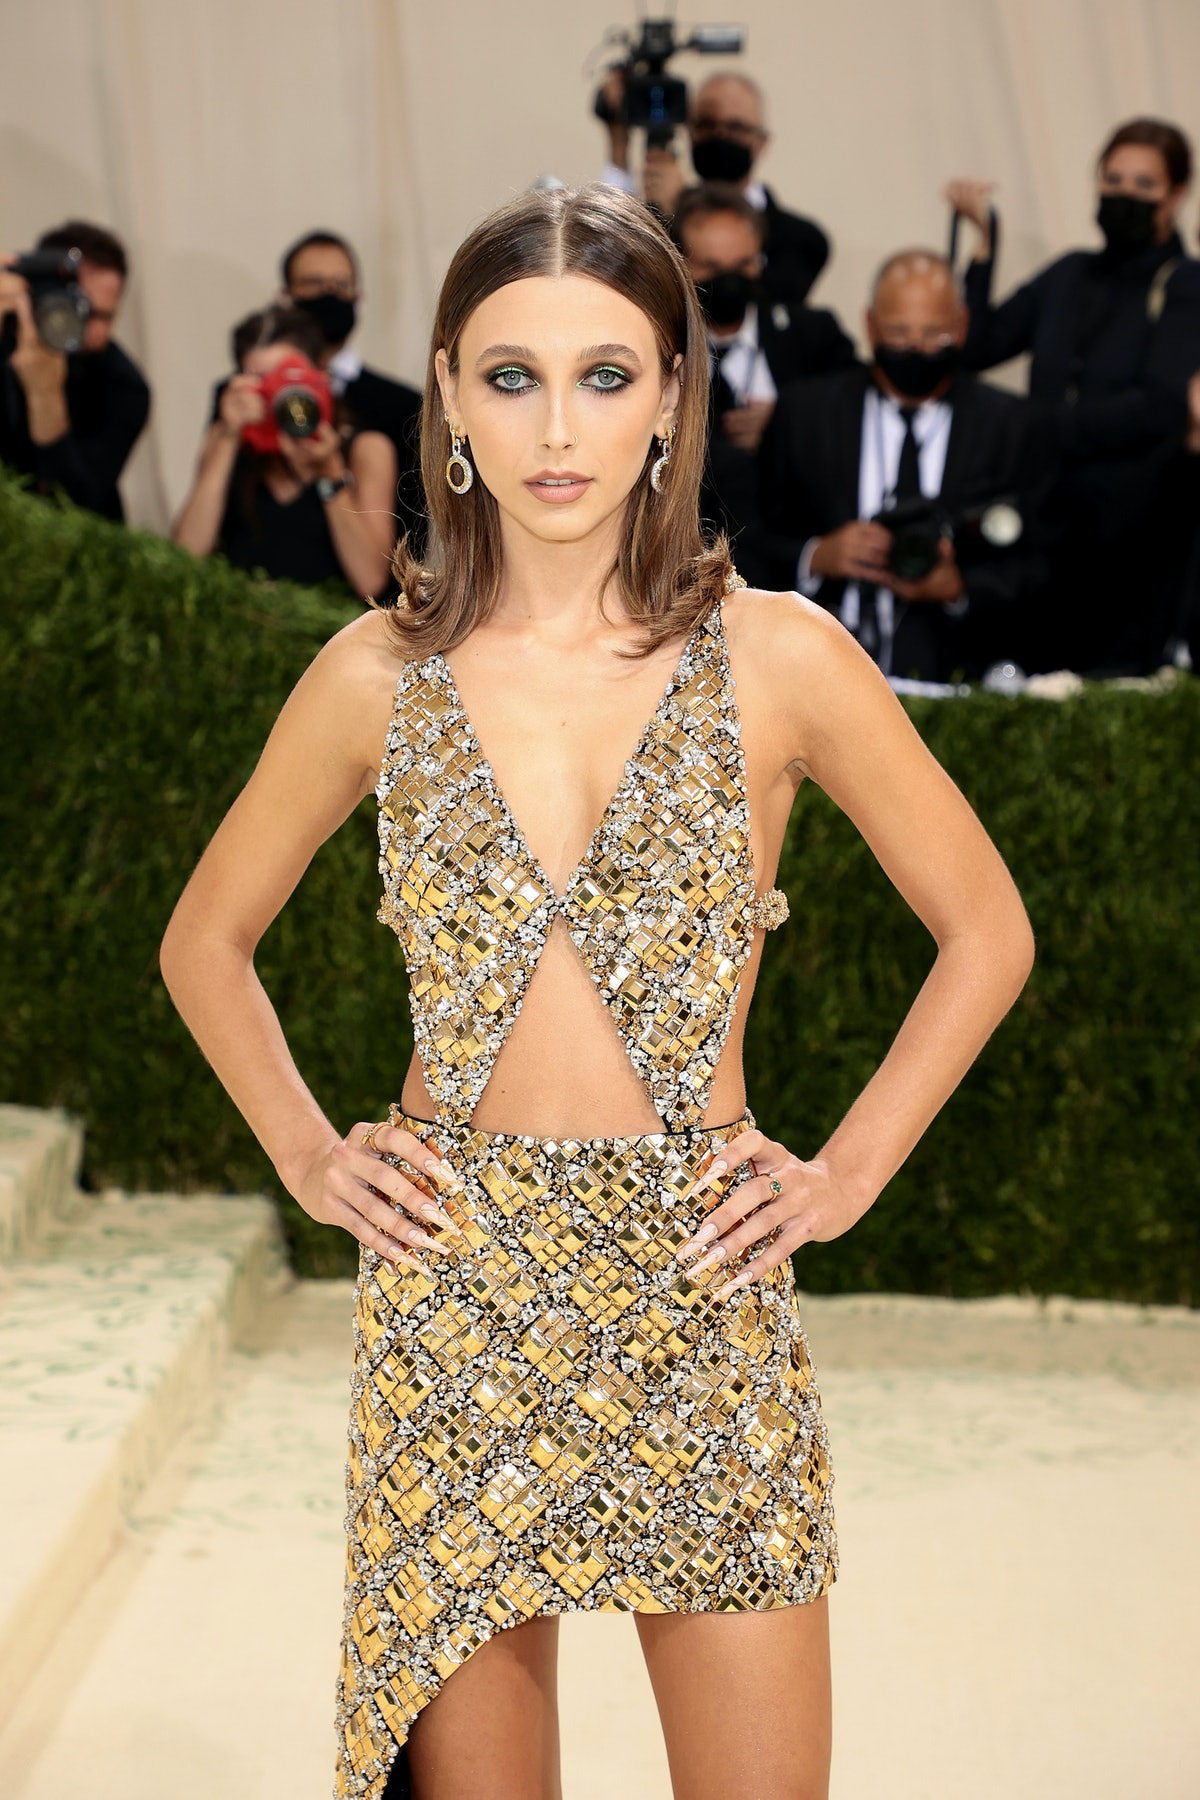 Emma Chamberlain went all out in gold for the 2021 Met Gala.